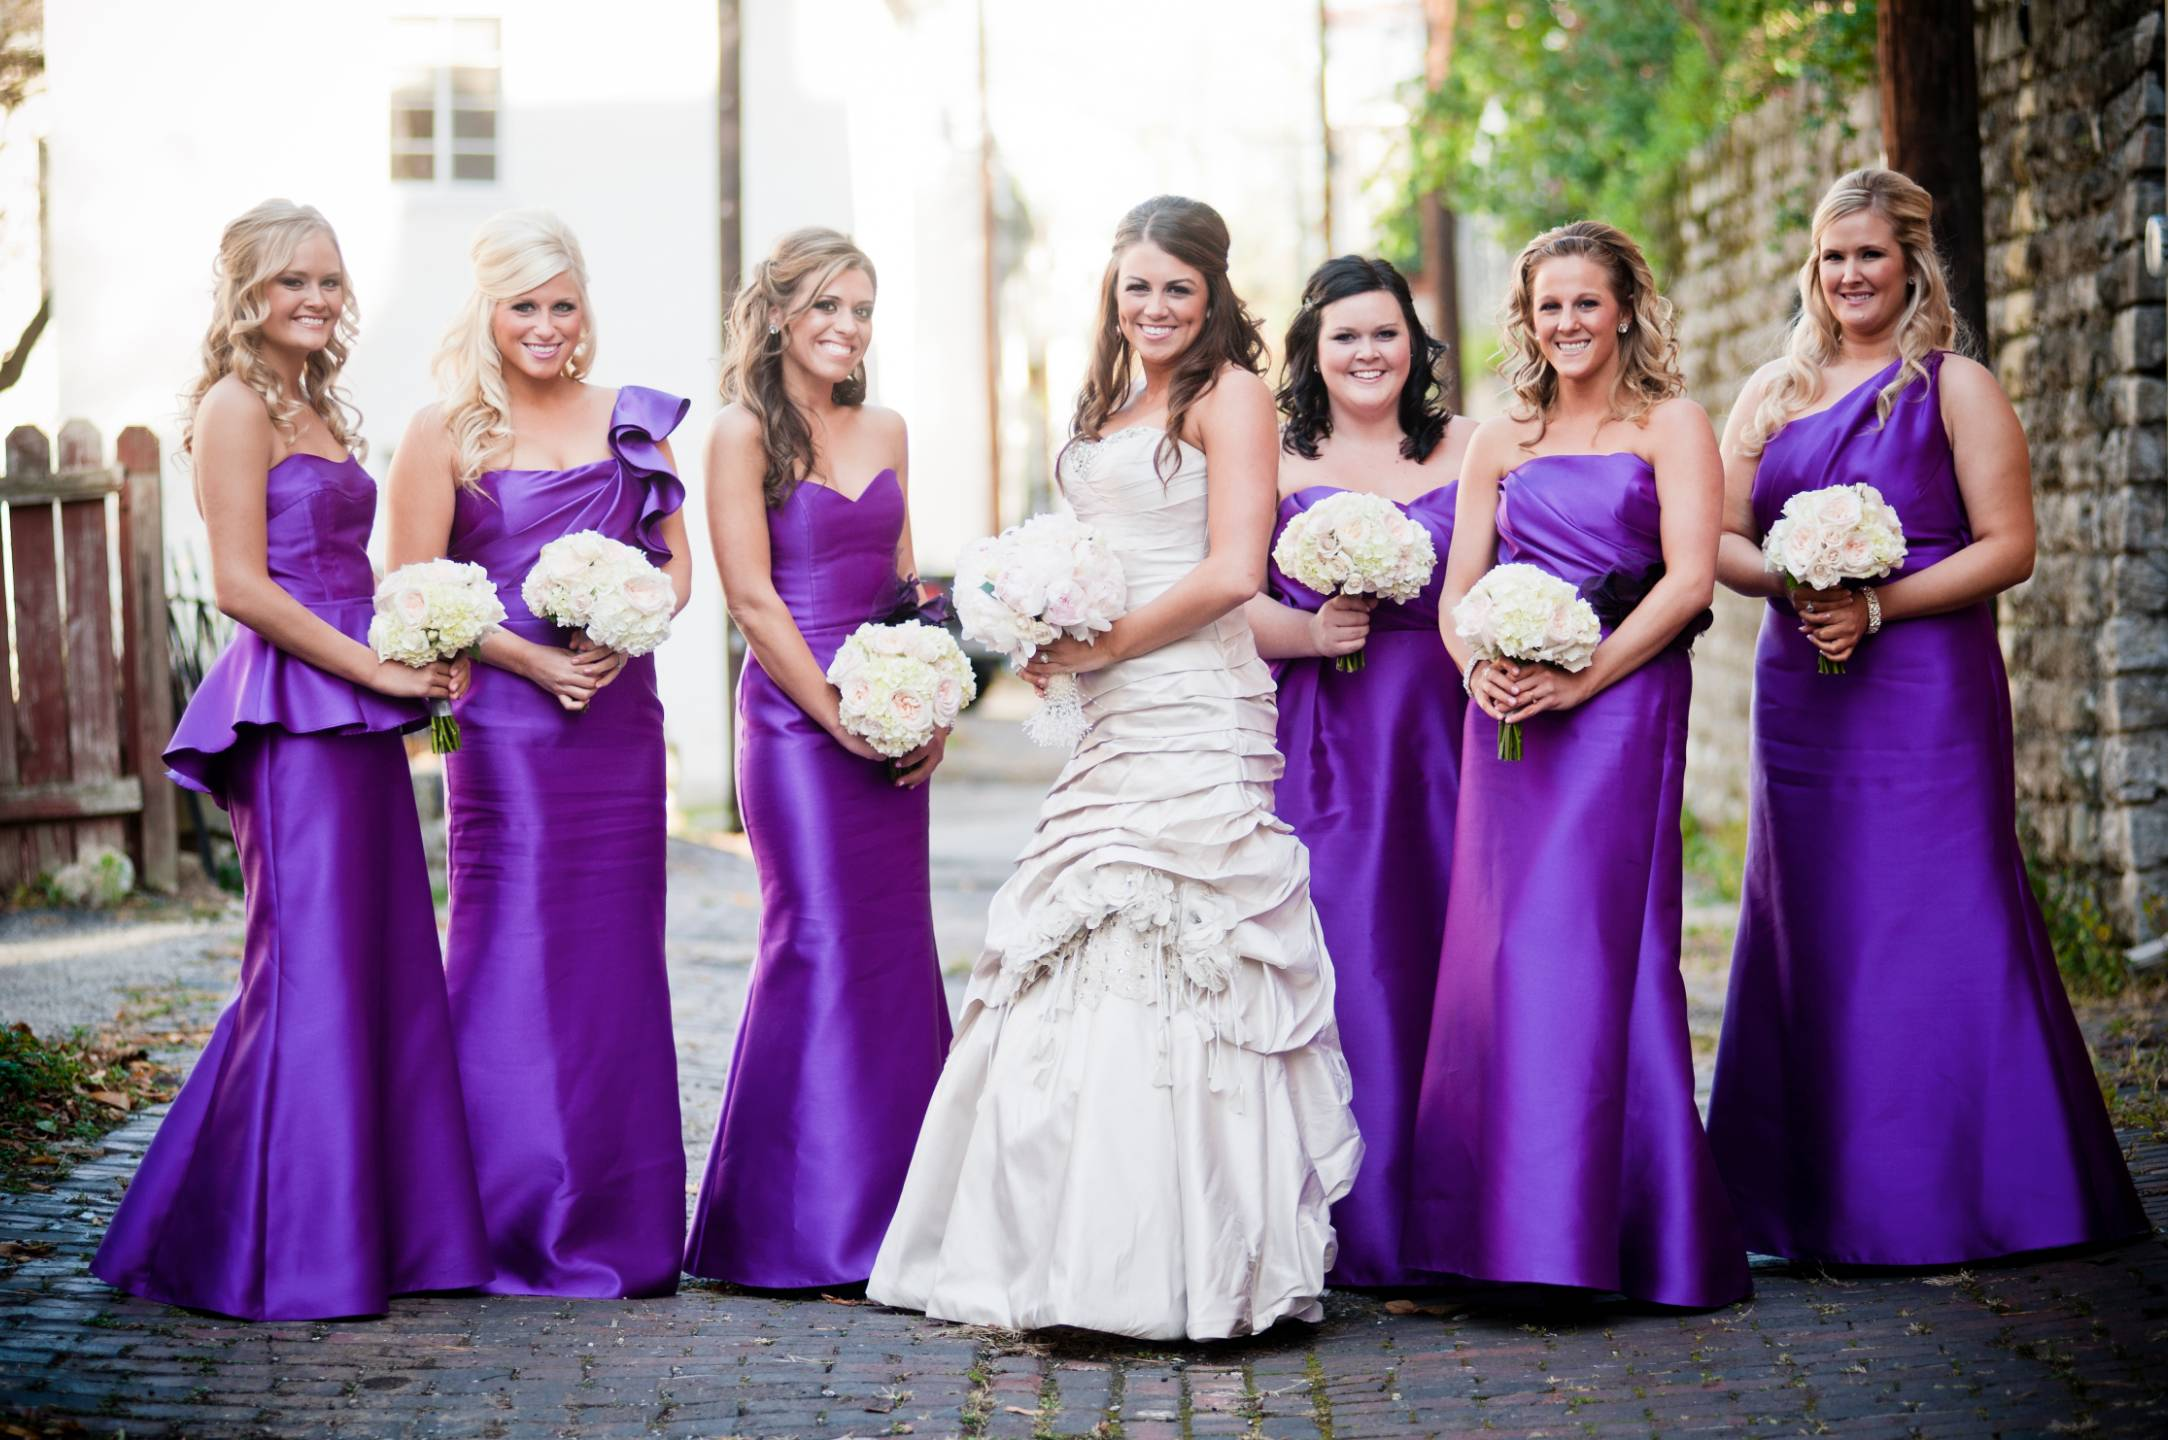 Bridesmaid Dresses For Wedding Bridal Gowns And Bridesmaids Dresses JLM Weddings